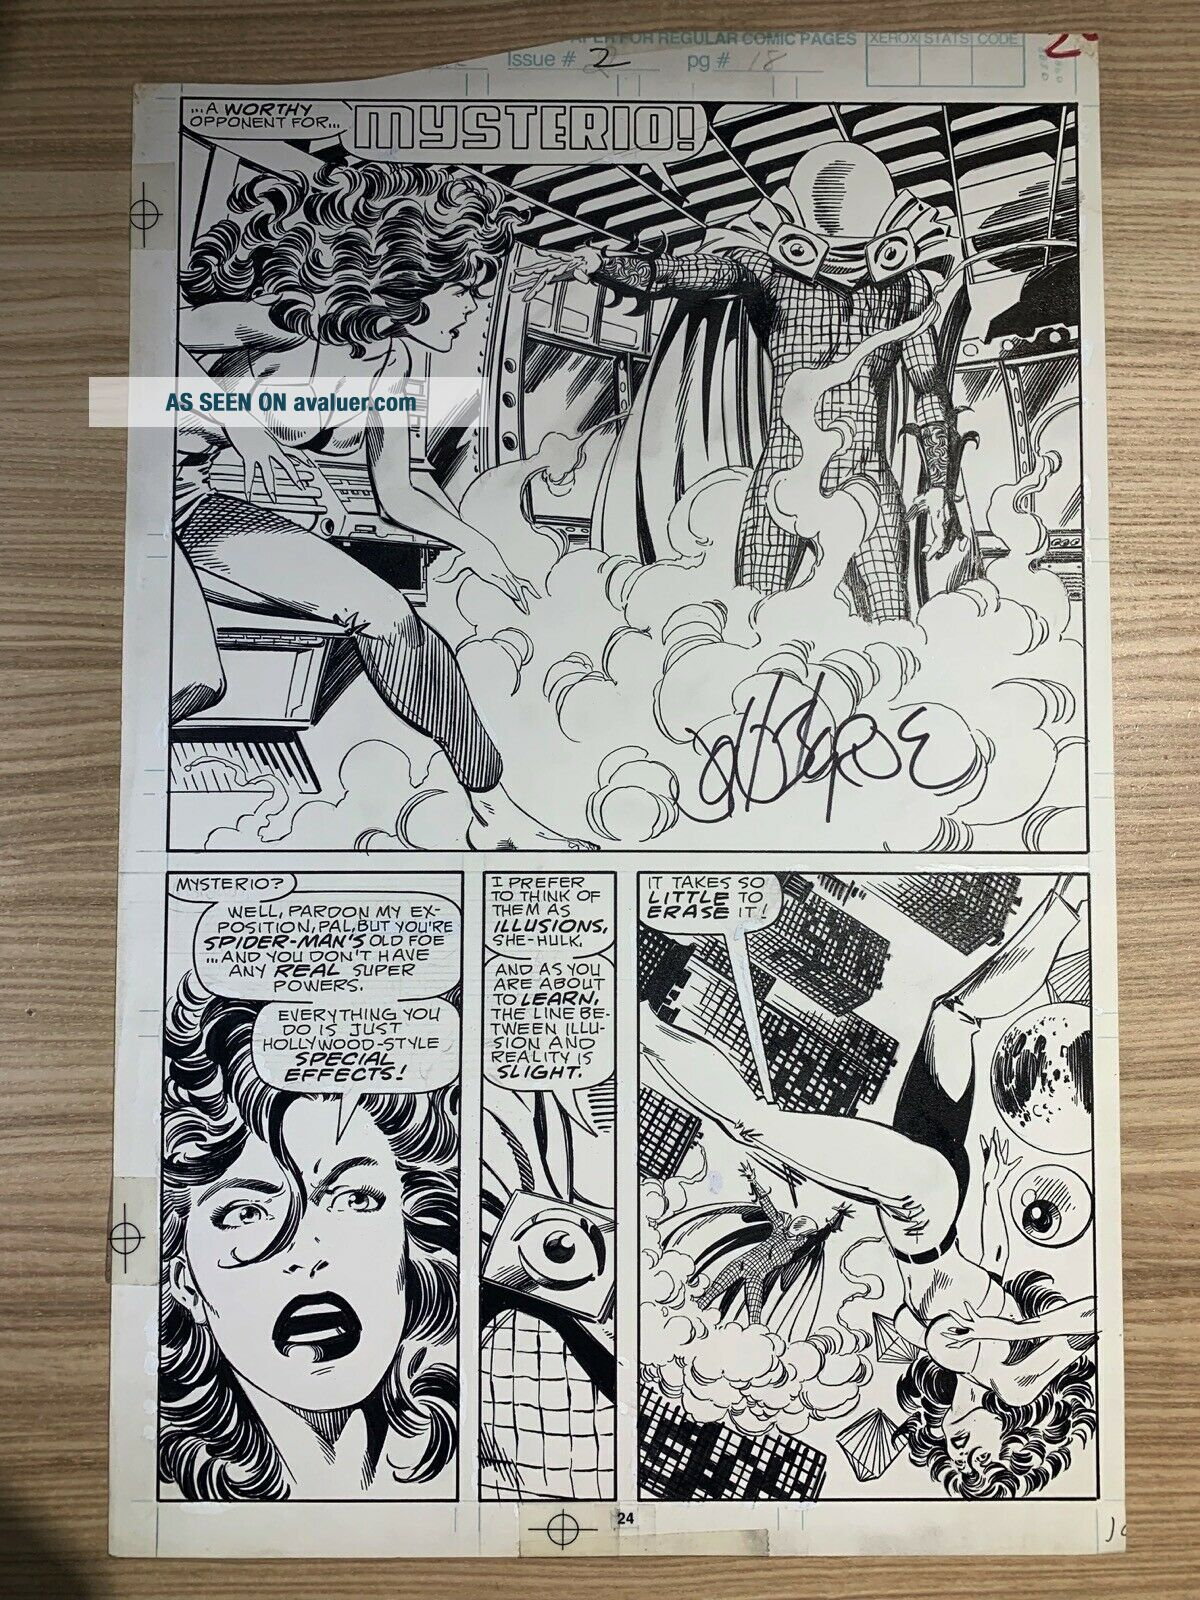 Sensational She - Hulk 2 Pg 18 Mysterio Published art by John Byrne